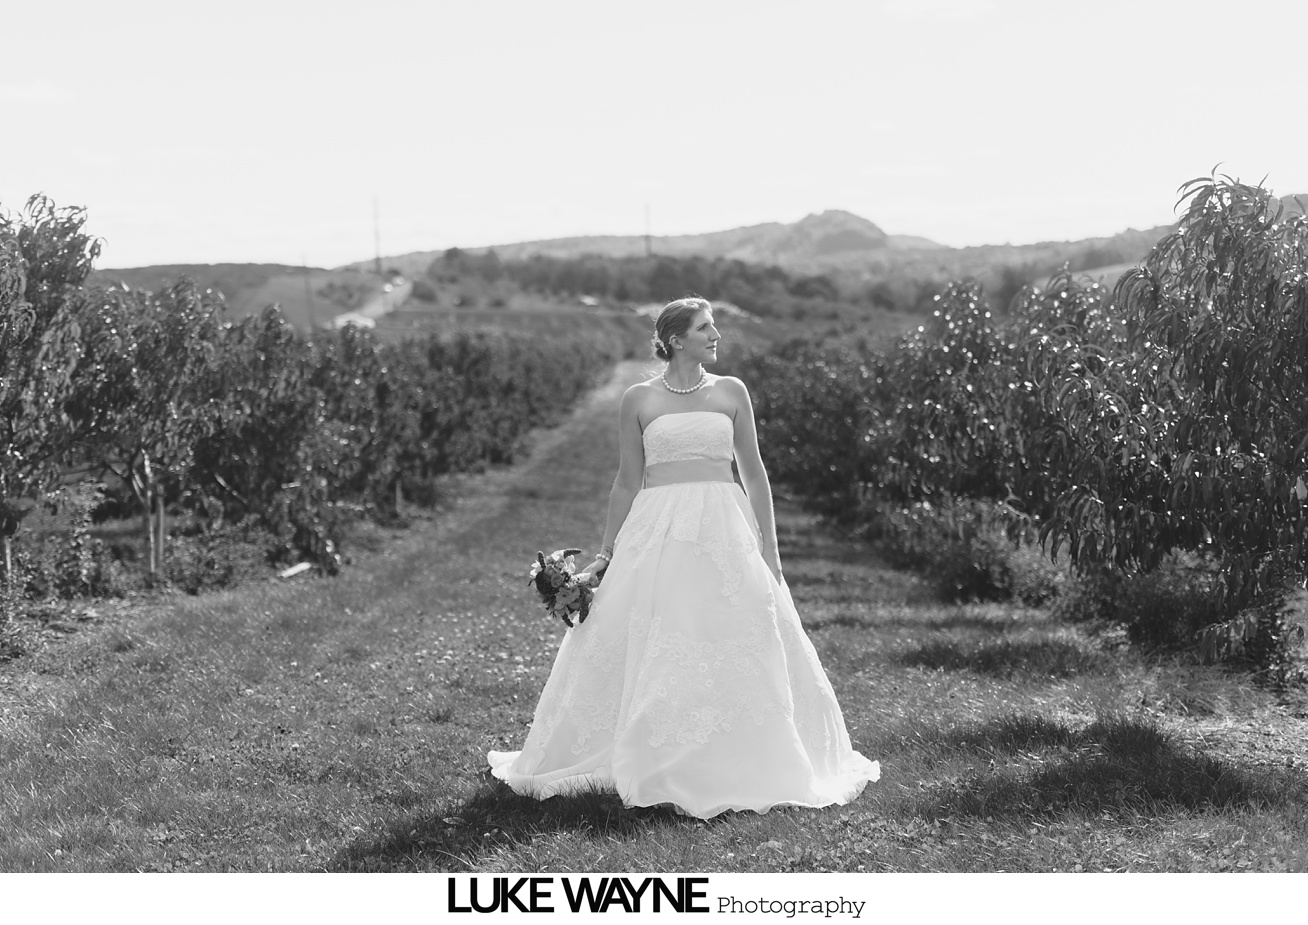 Saint_Clements_St_Wedding_Lyman_Orchards_Fall_Autumn_18